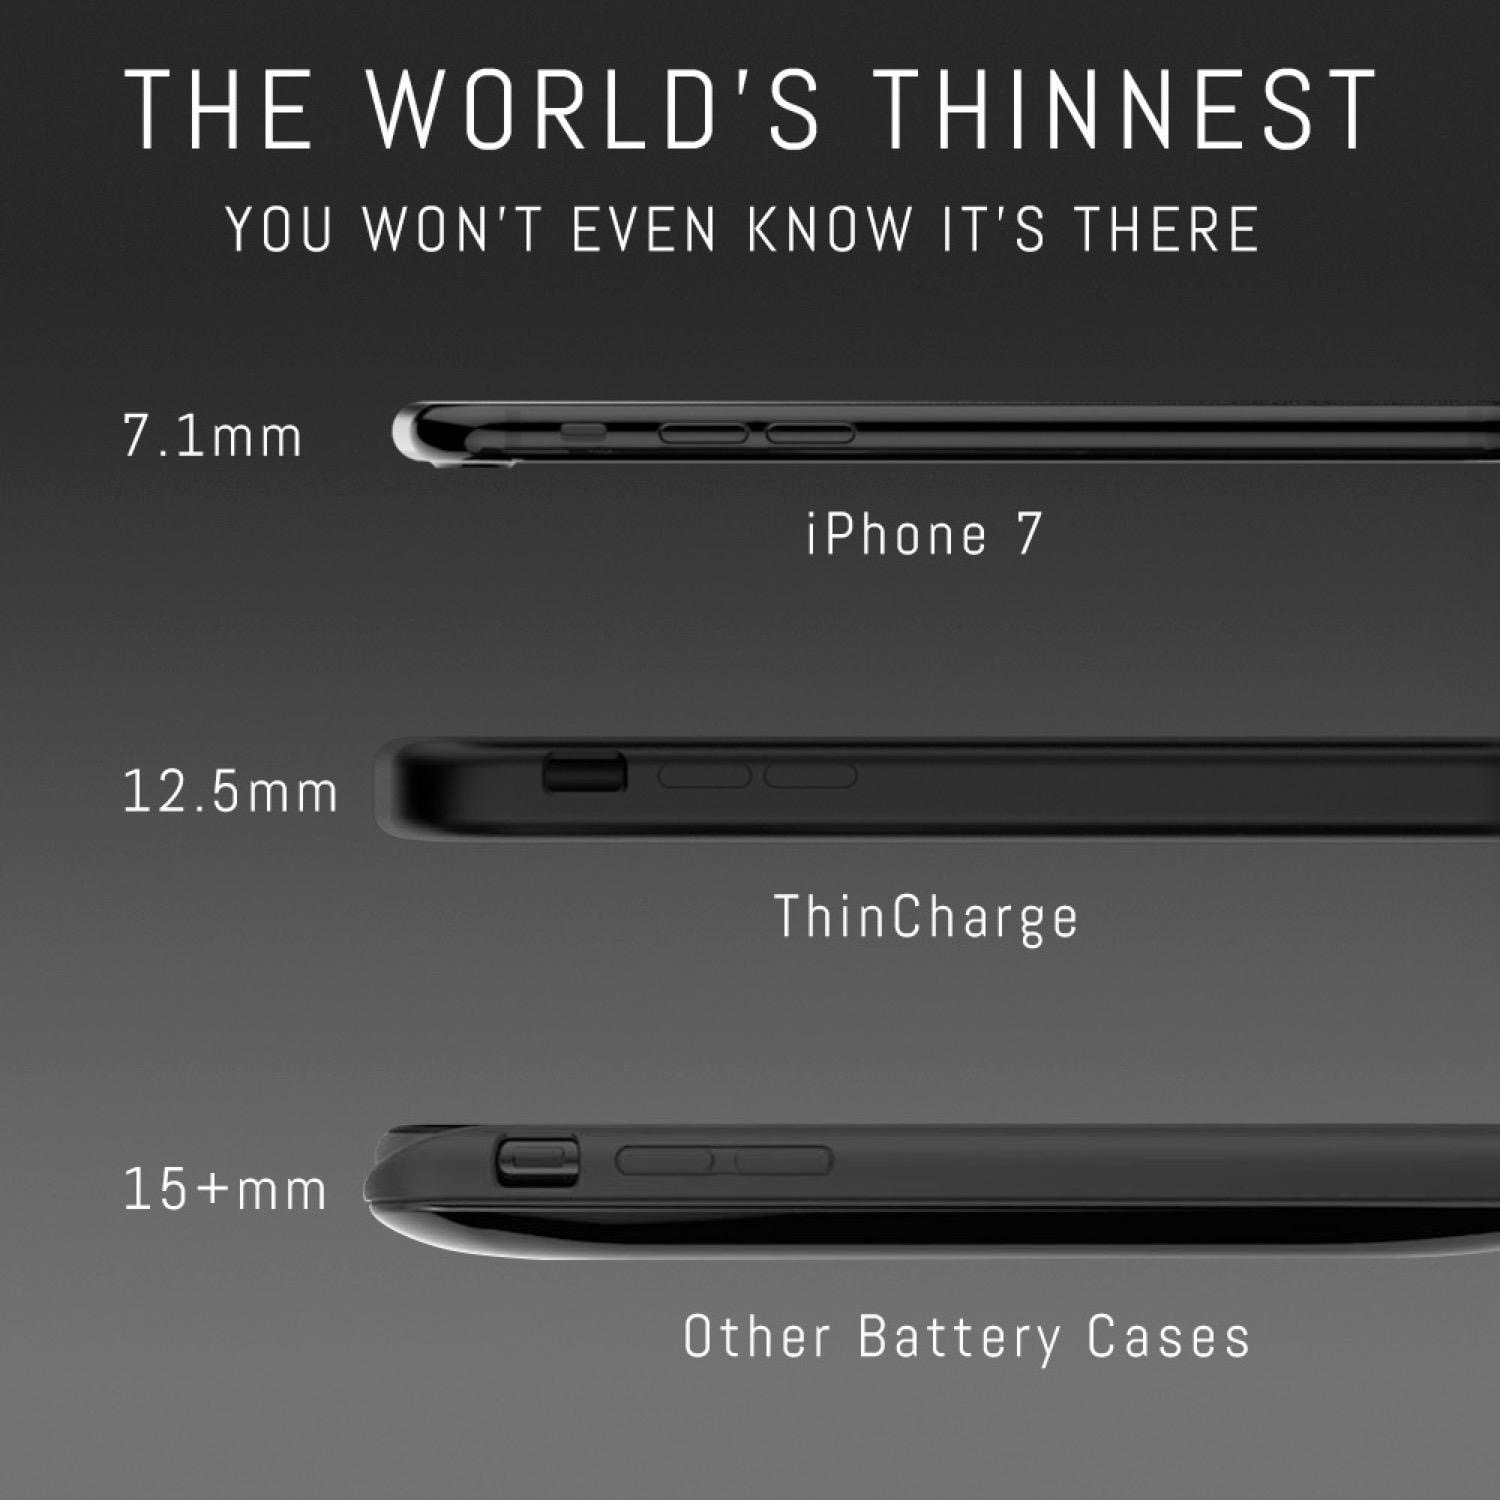 Thin charge 3